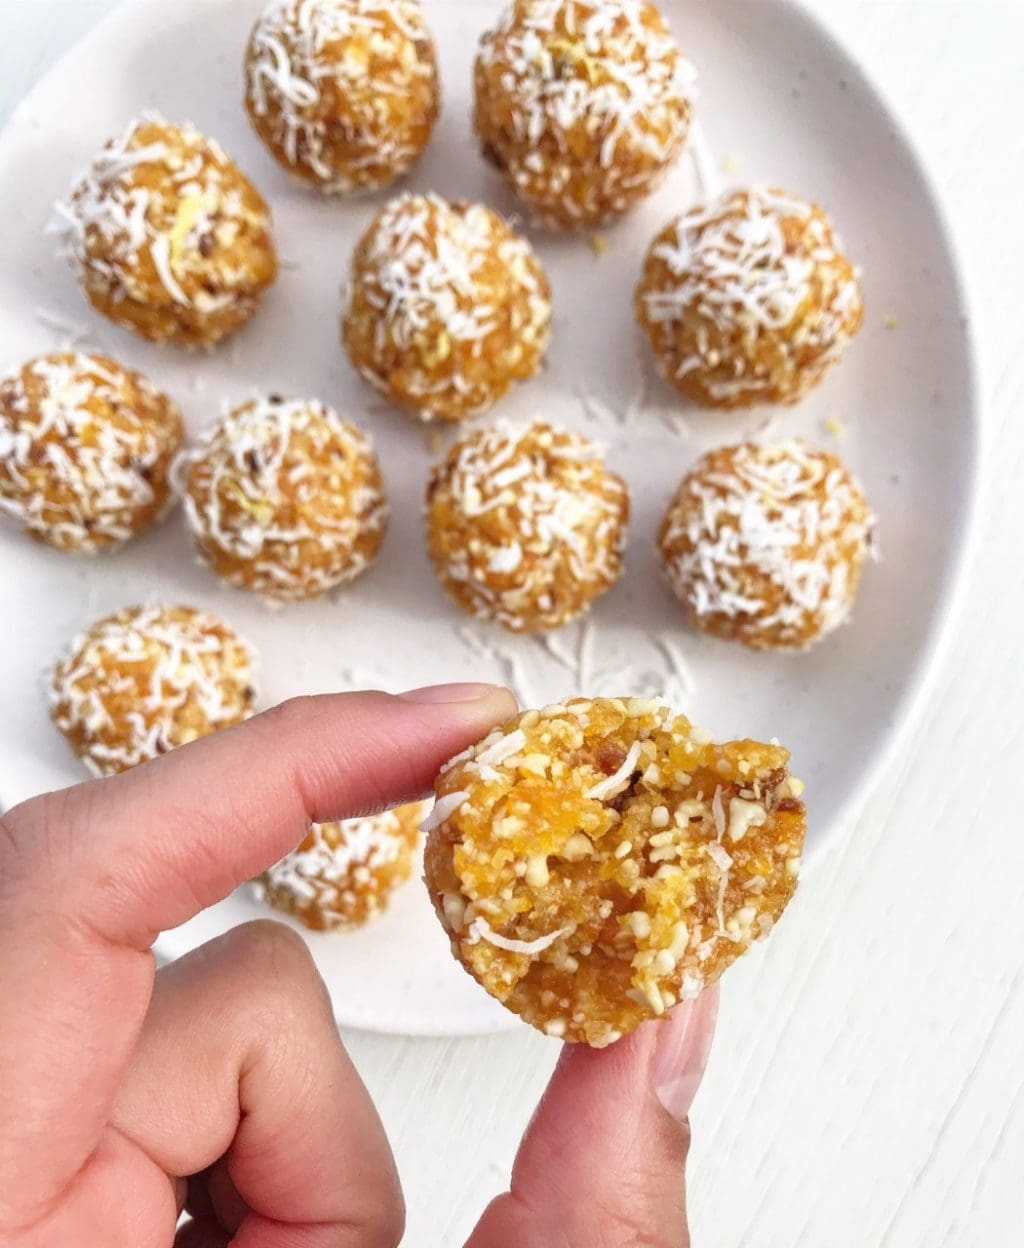 A plate of lemon, apricot and coconut bliss balls.